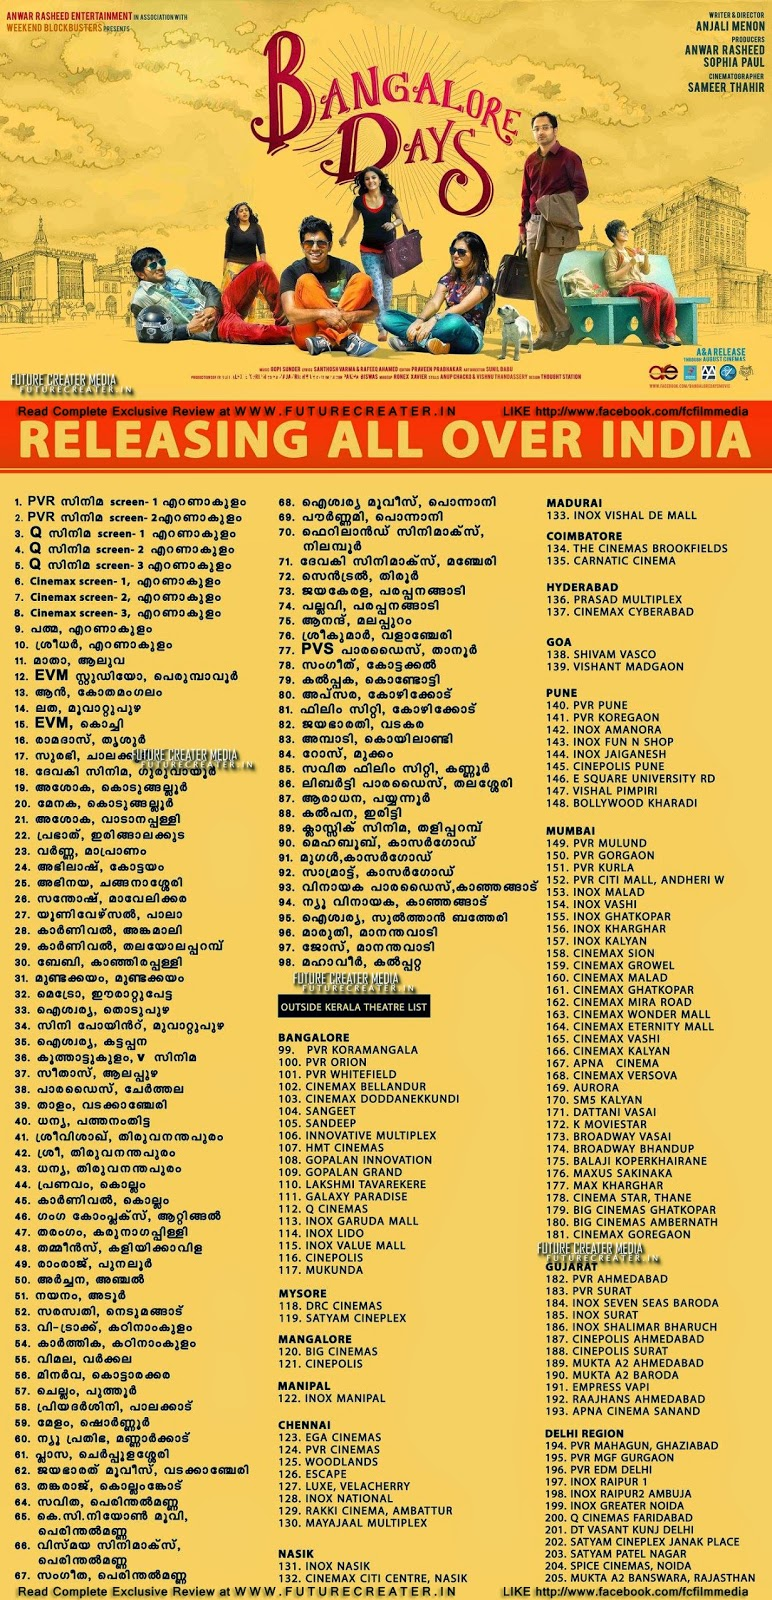 Bangalore Days theater list | Bangalore Days Releasing Centers